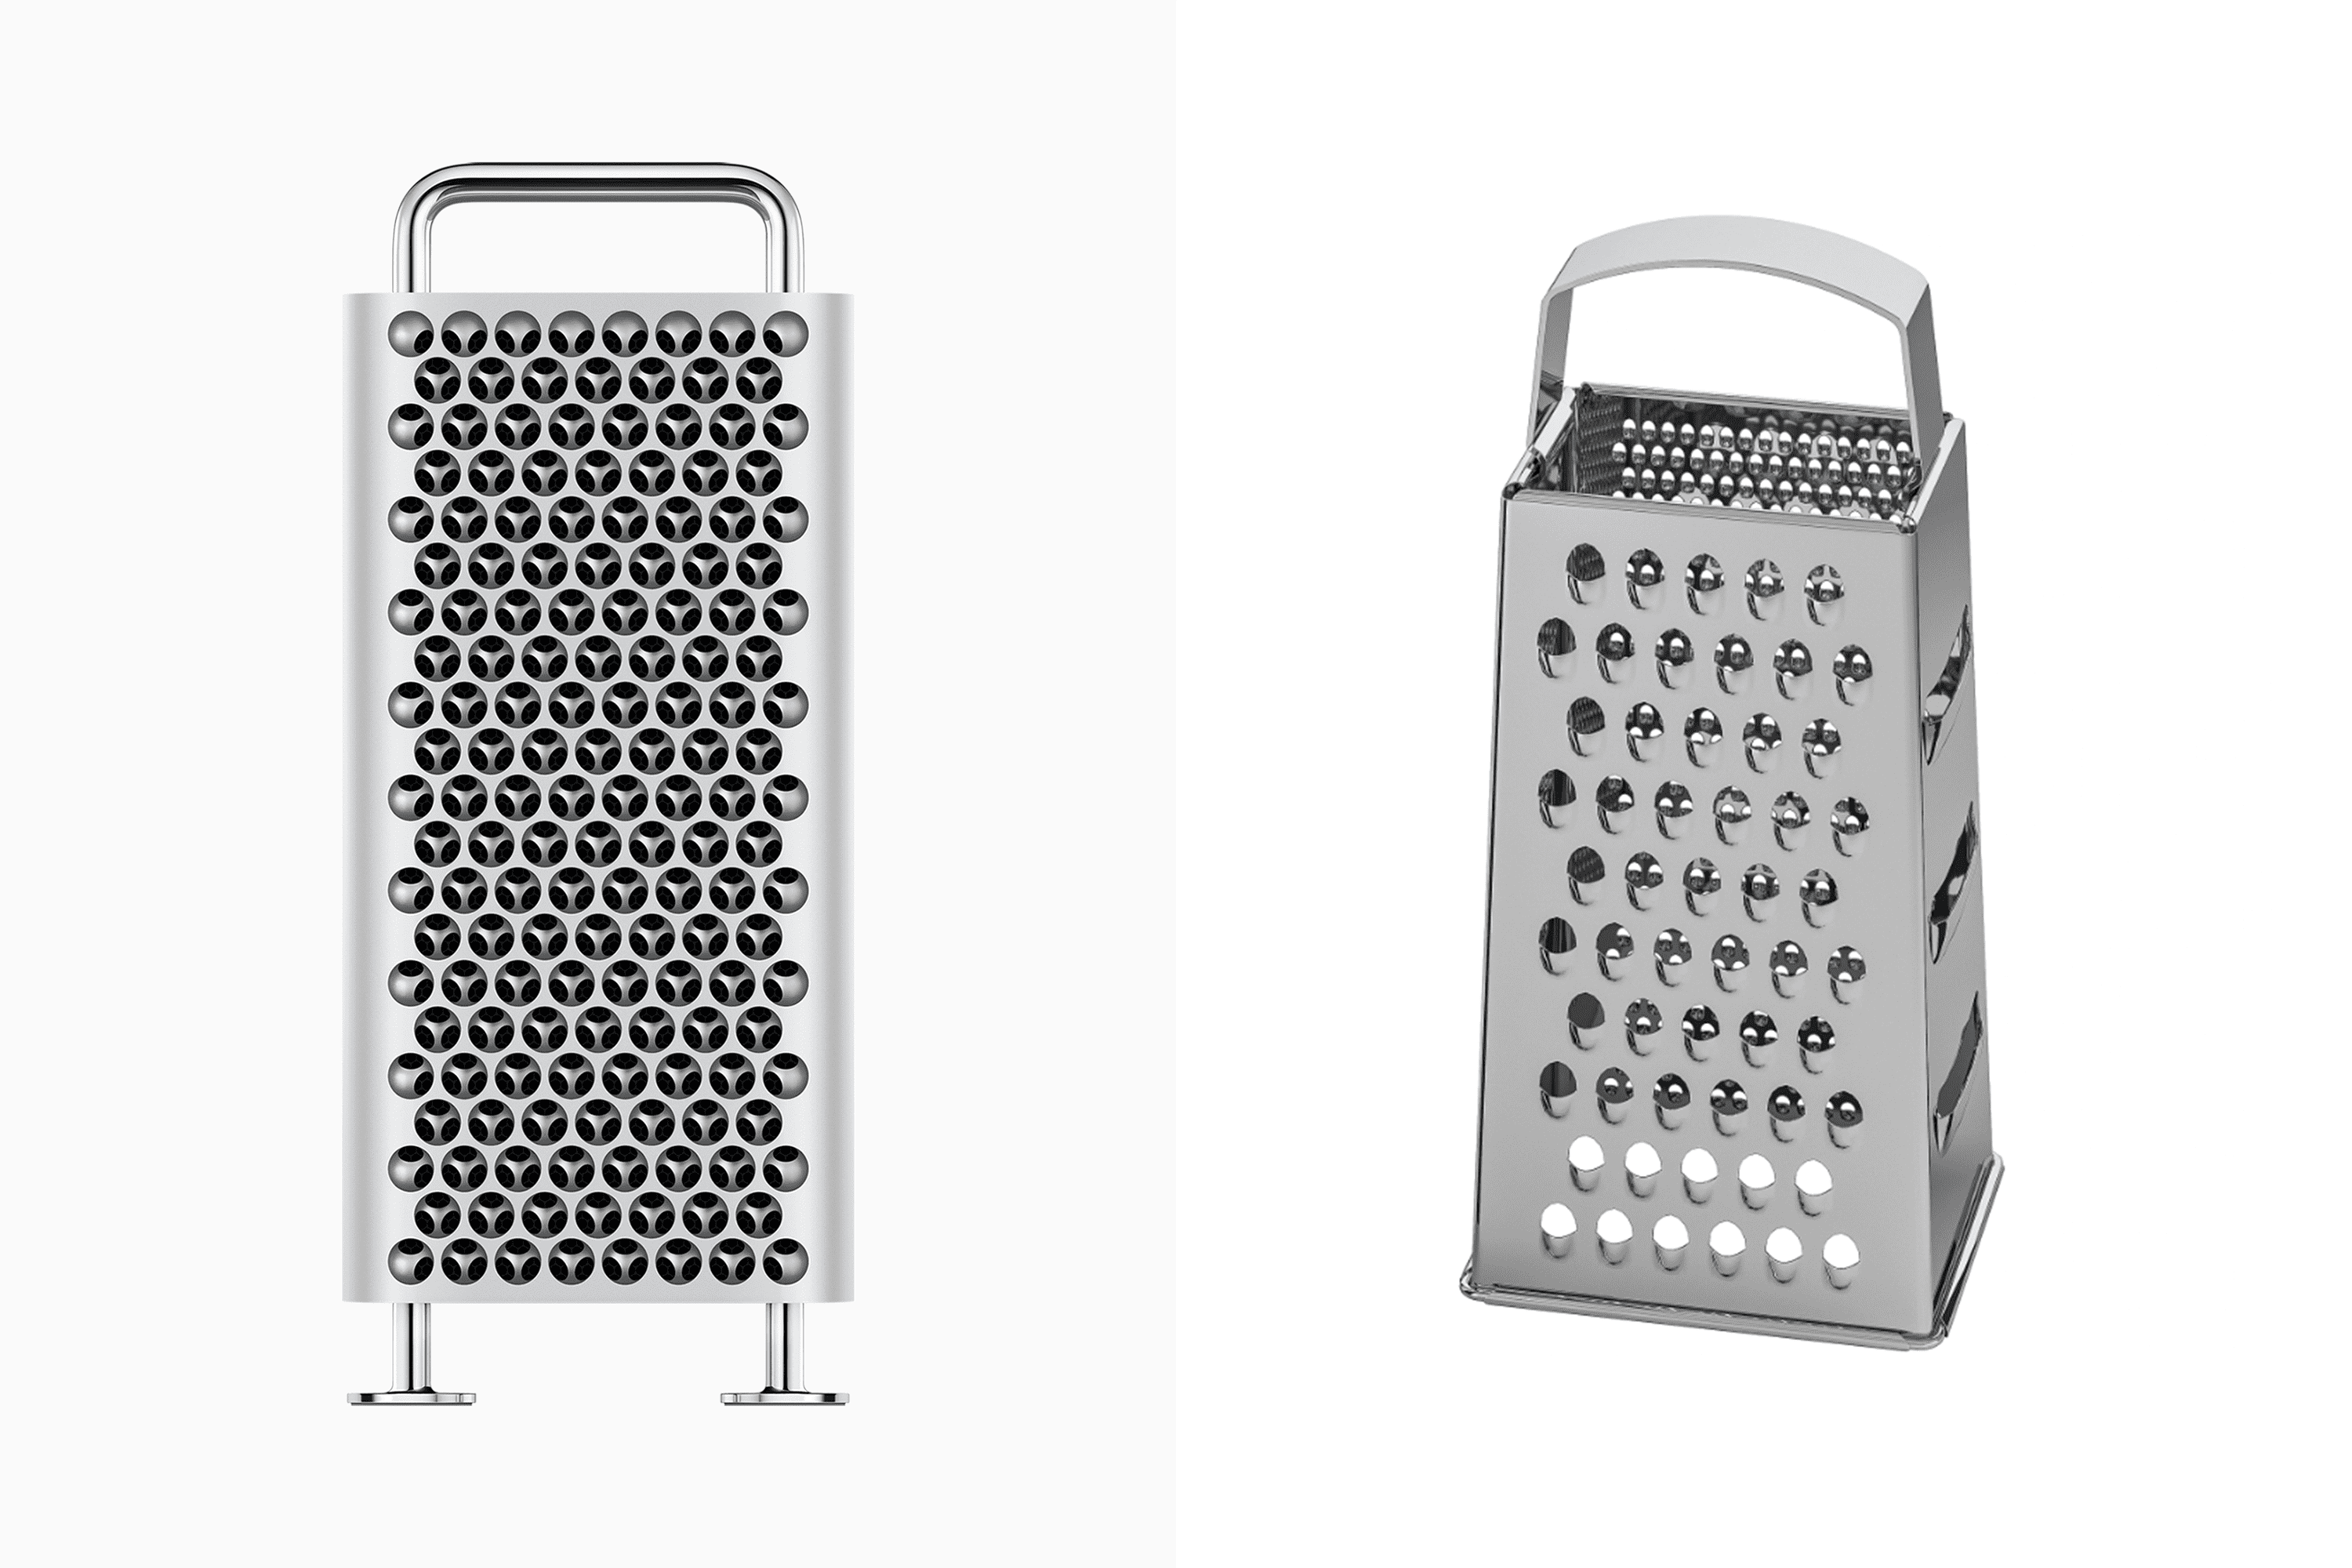 Apple's New Mac Looks Like a Cheese Grater and IKEA's Got Jokes